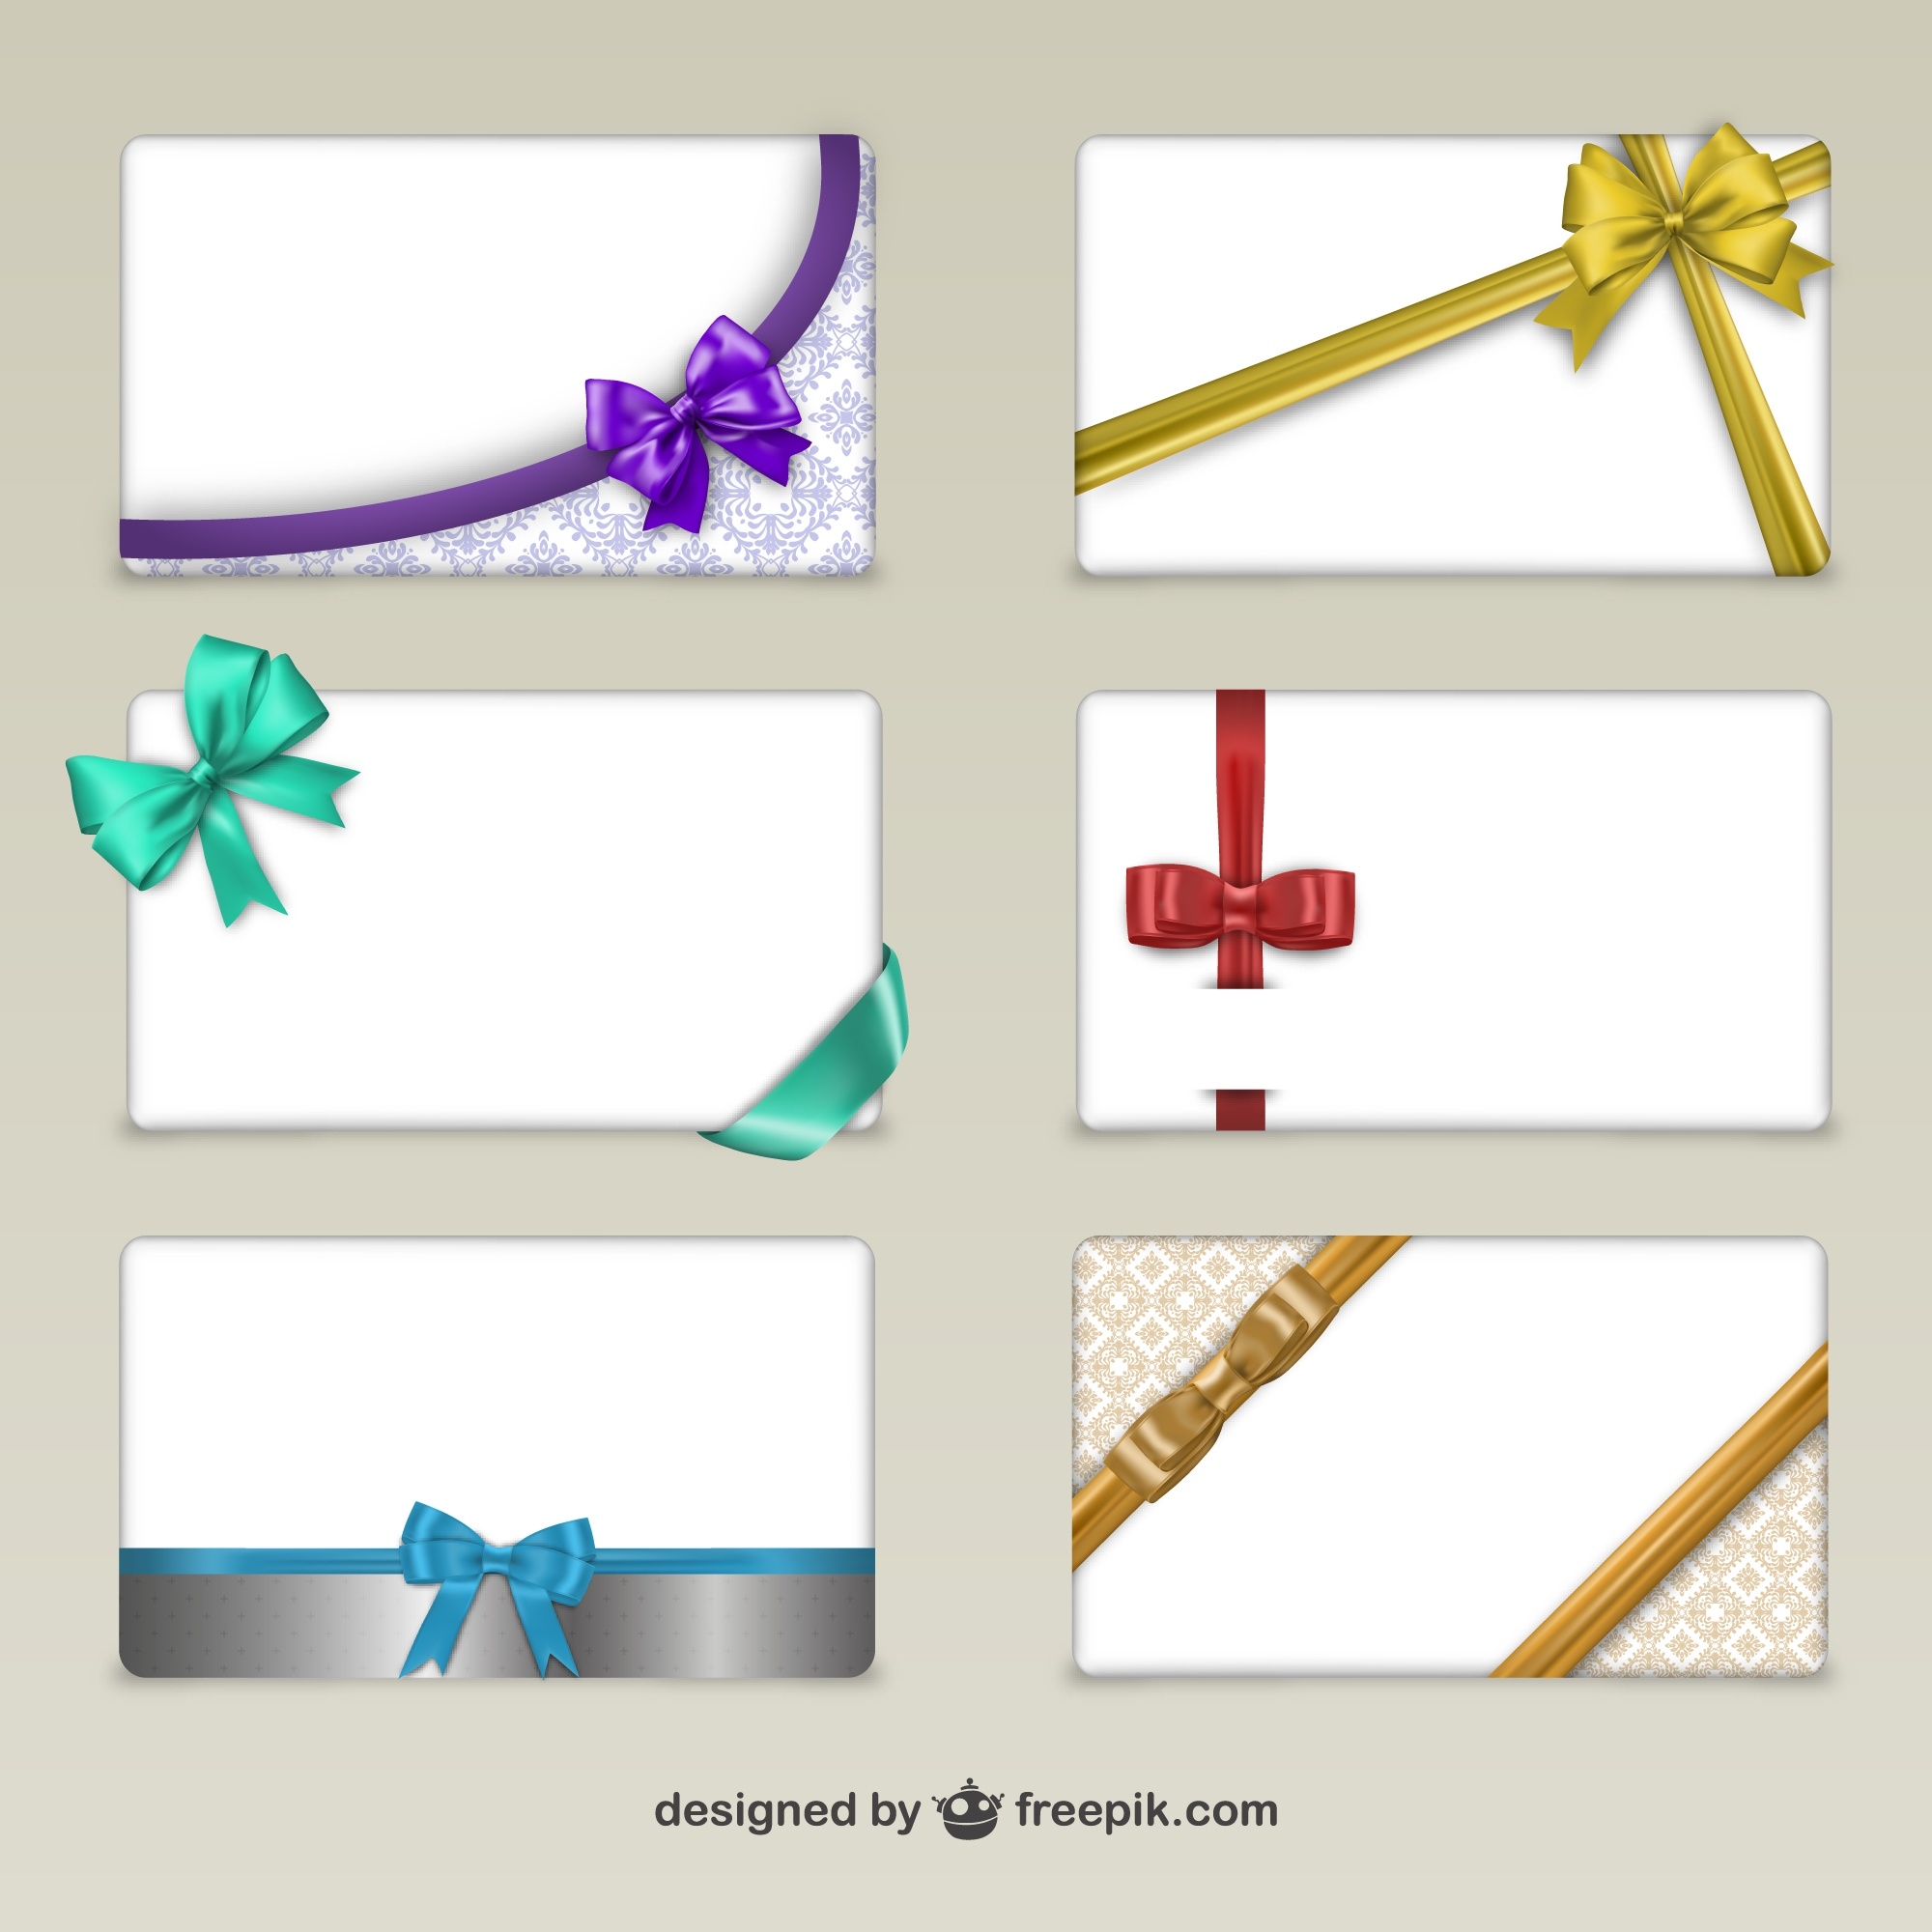 Cards with ribbons for Black Friday